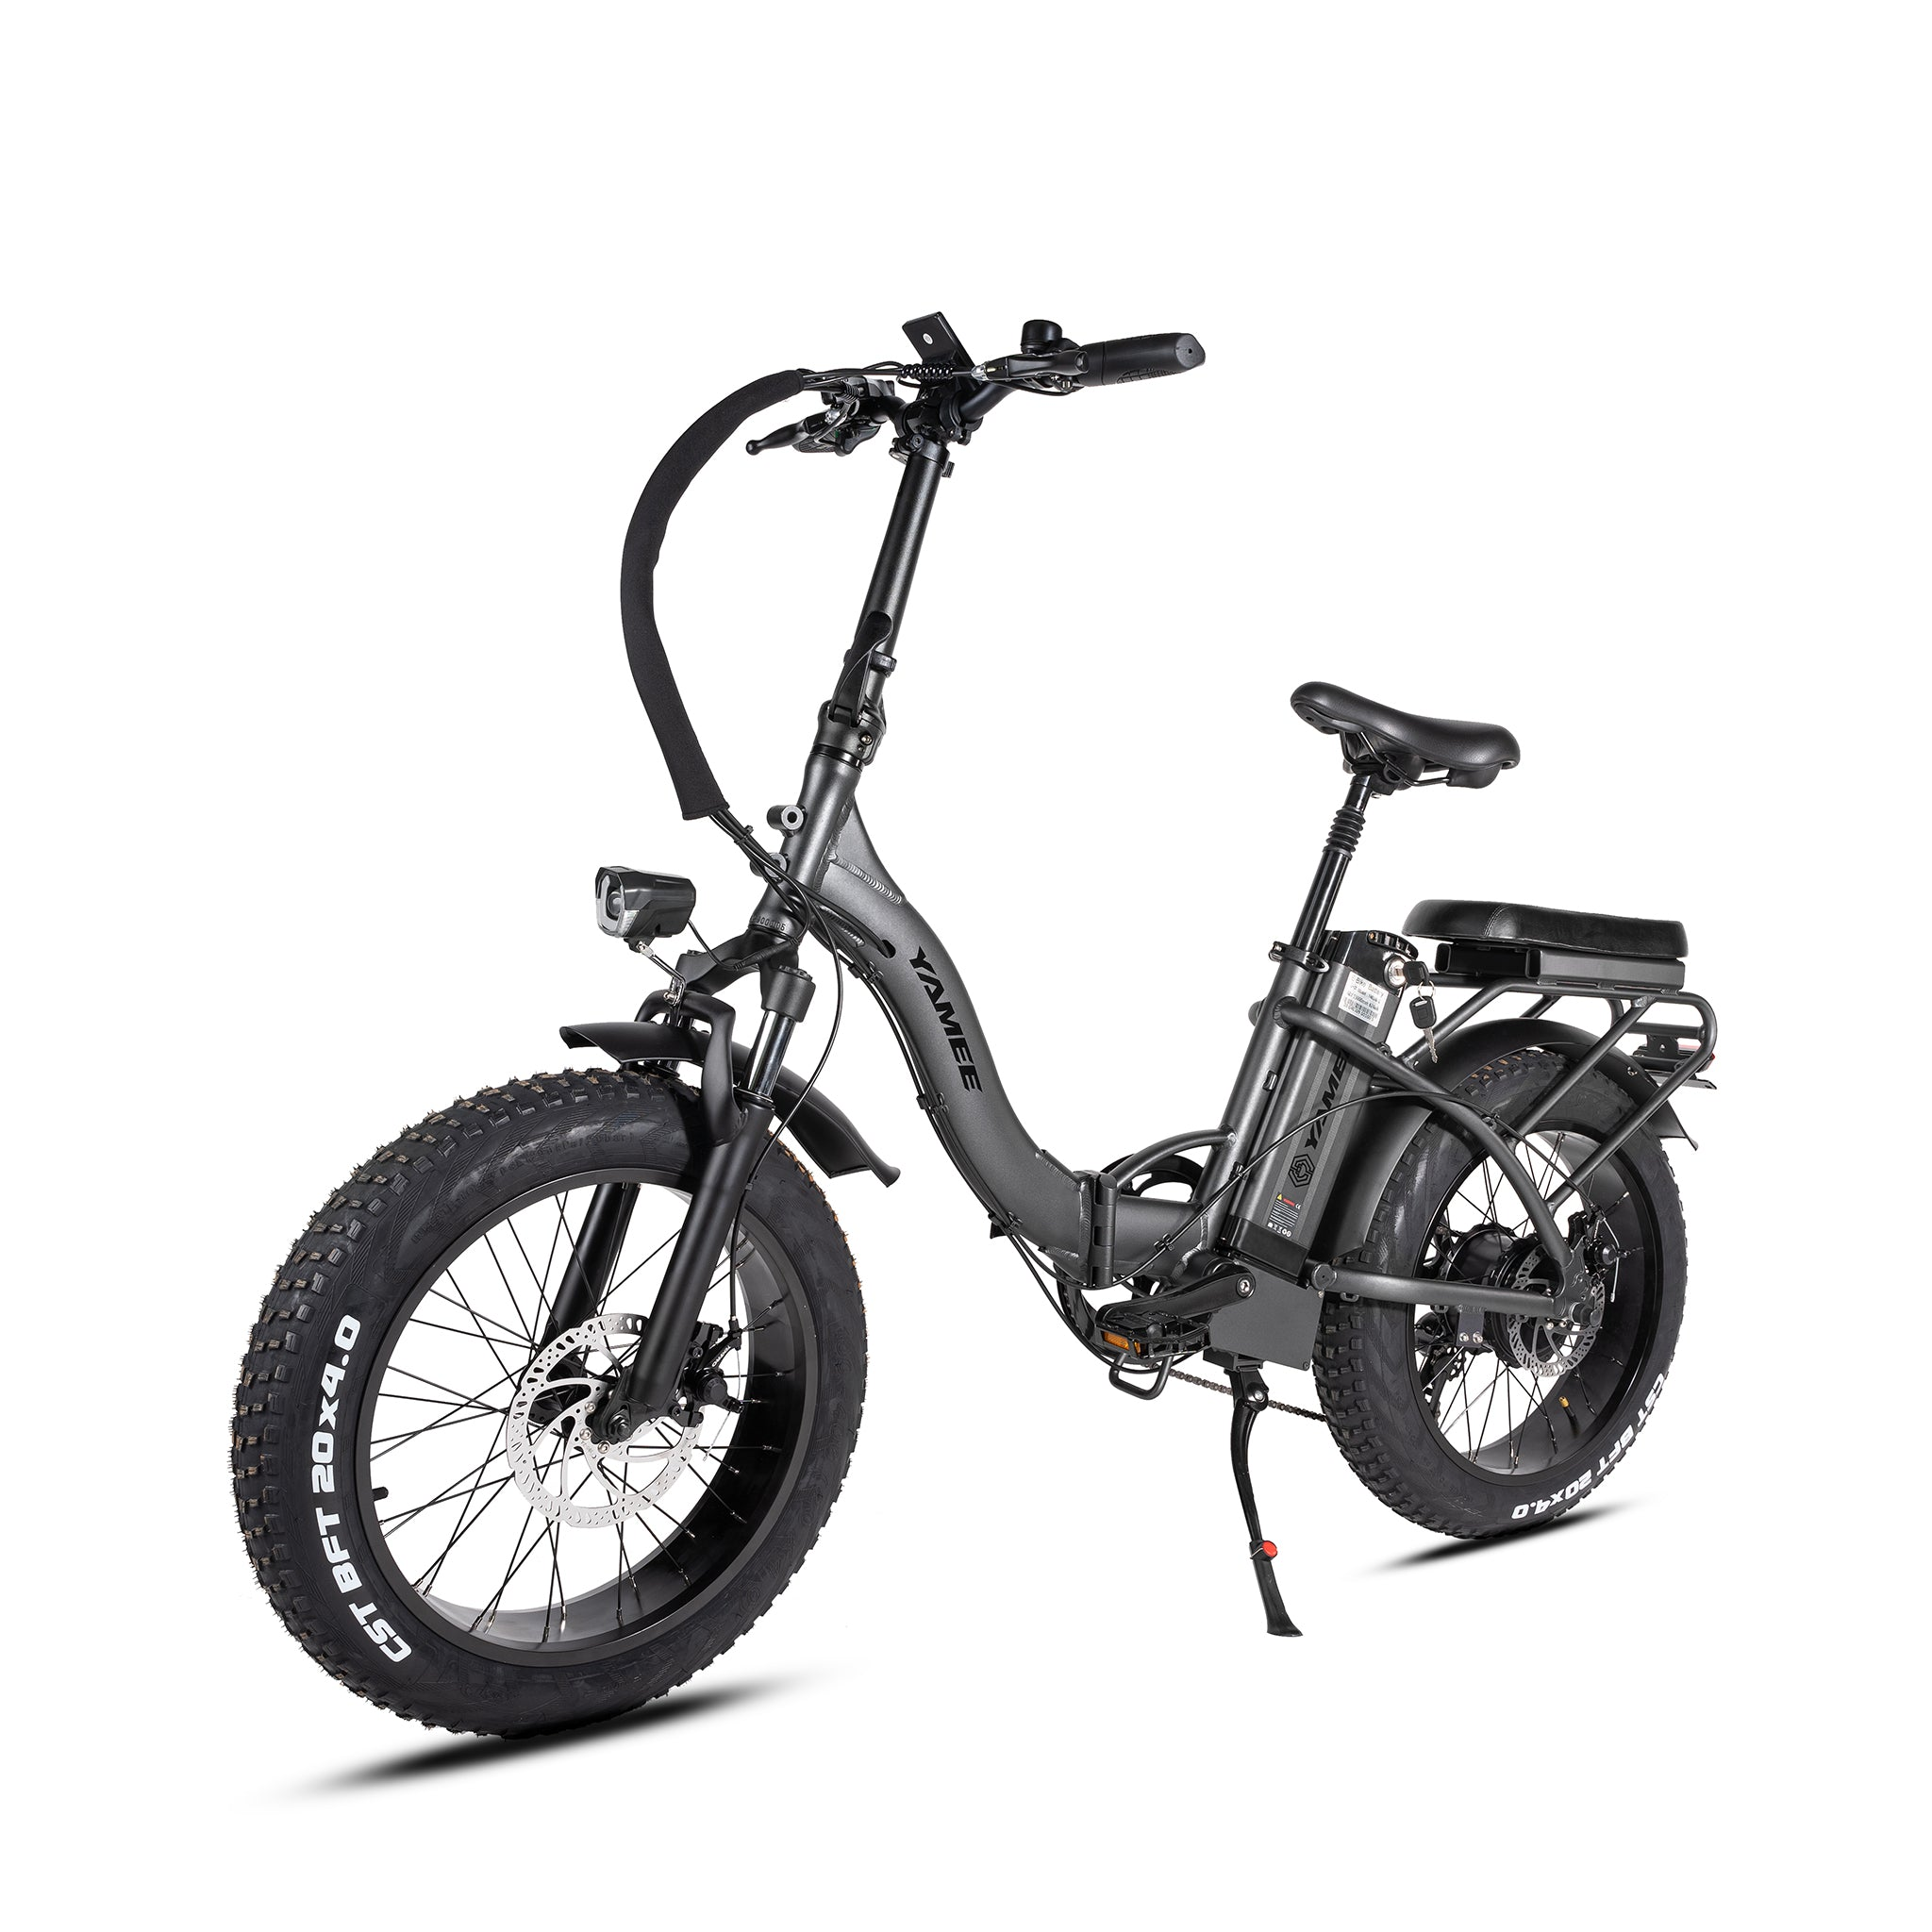 LF-750 - 750 Watts Tandem Fat Tire Folding Aluminum Electric Bike in 3 Colors (Easy Step Through)